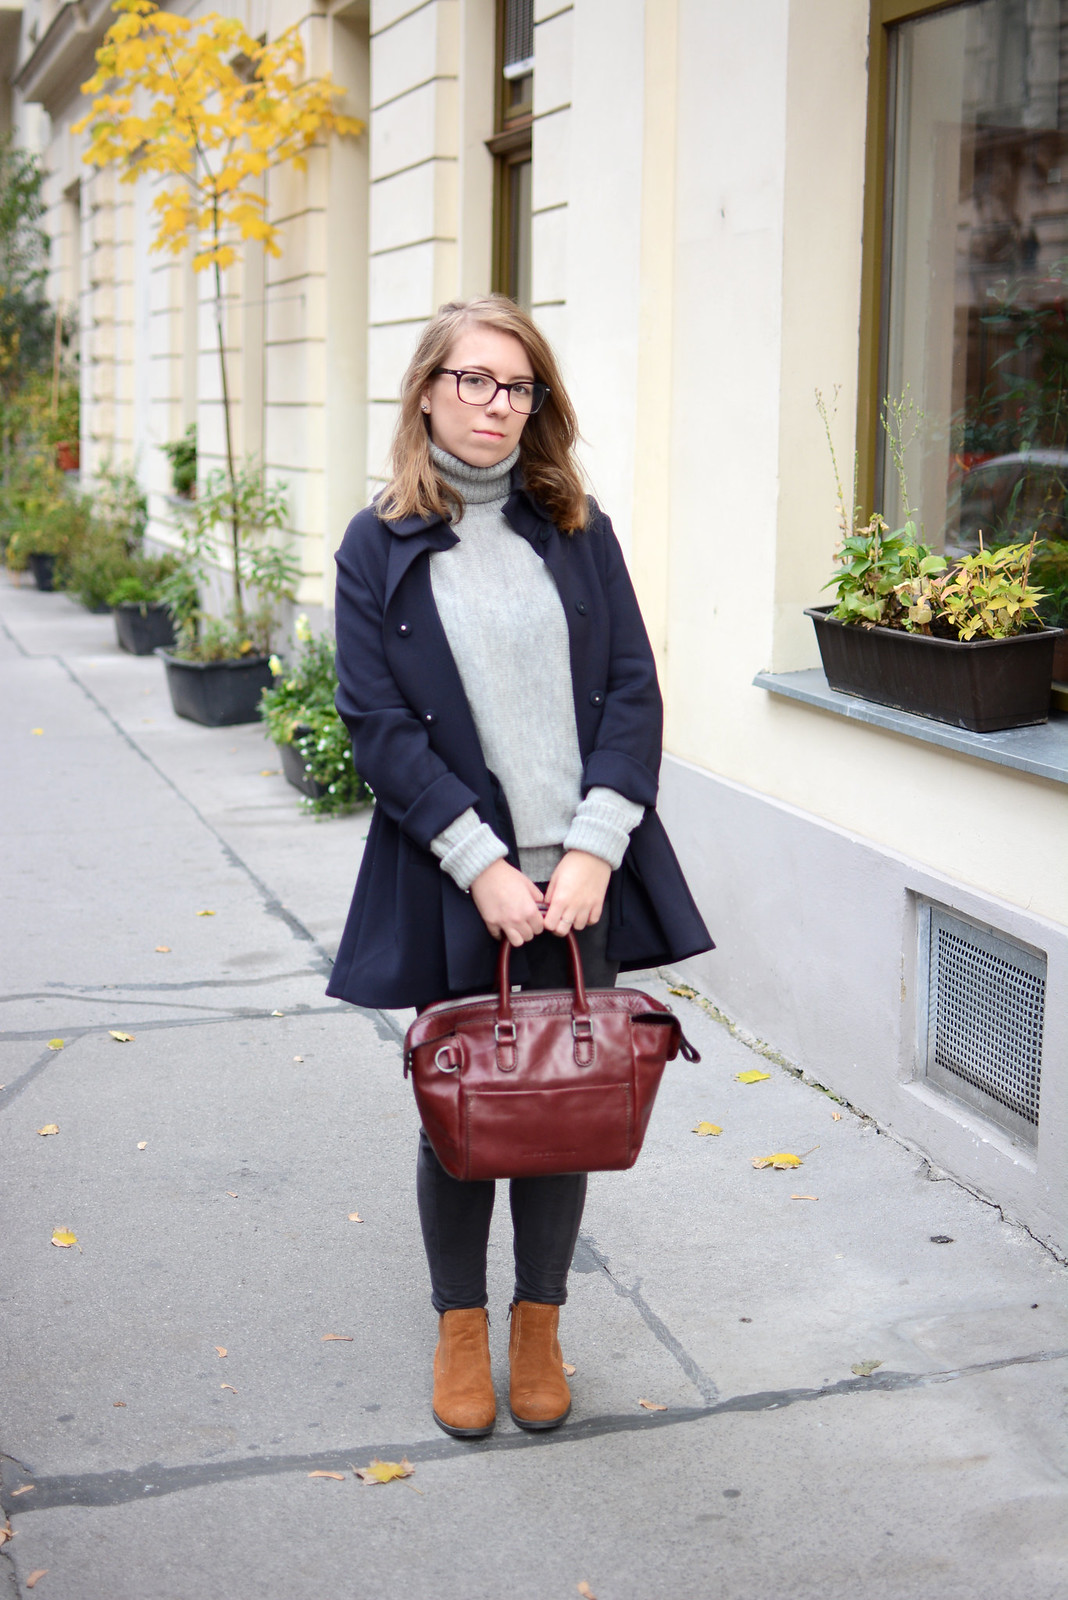 Herbstliches-Outfit